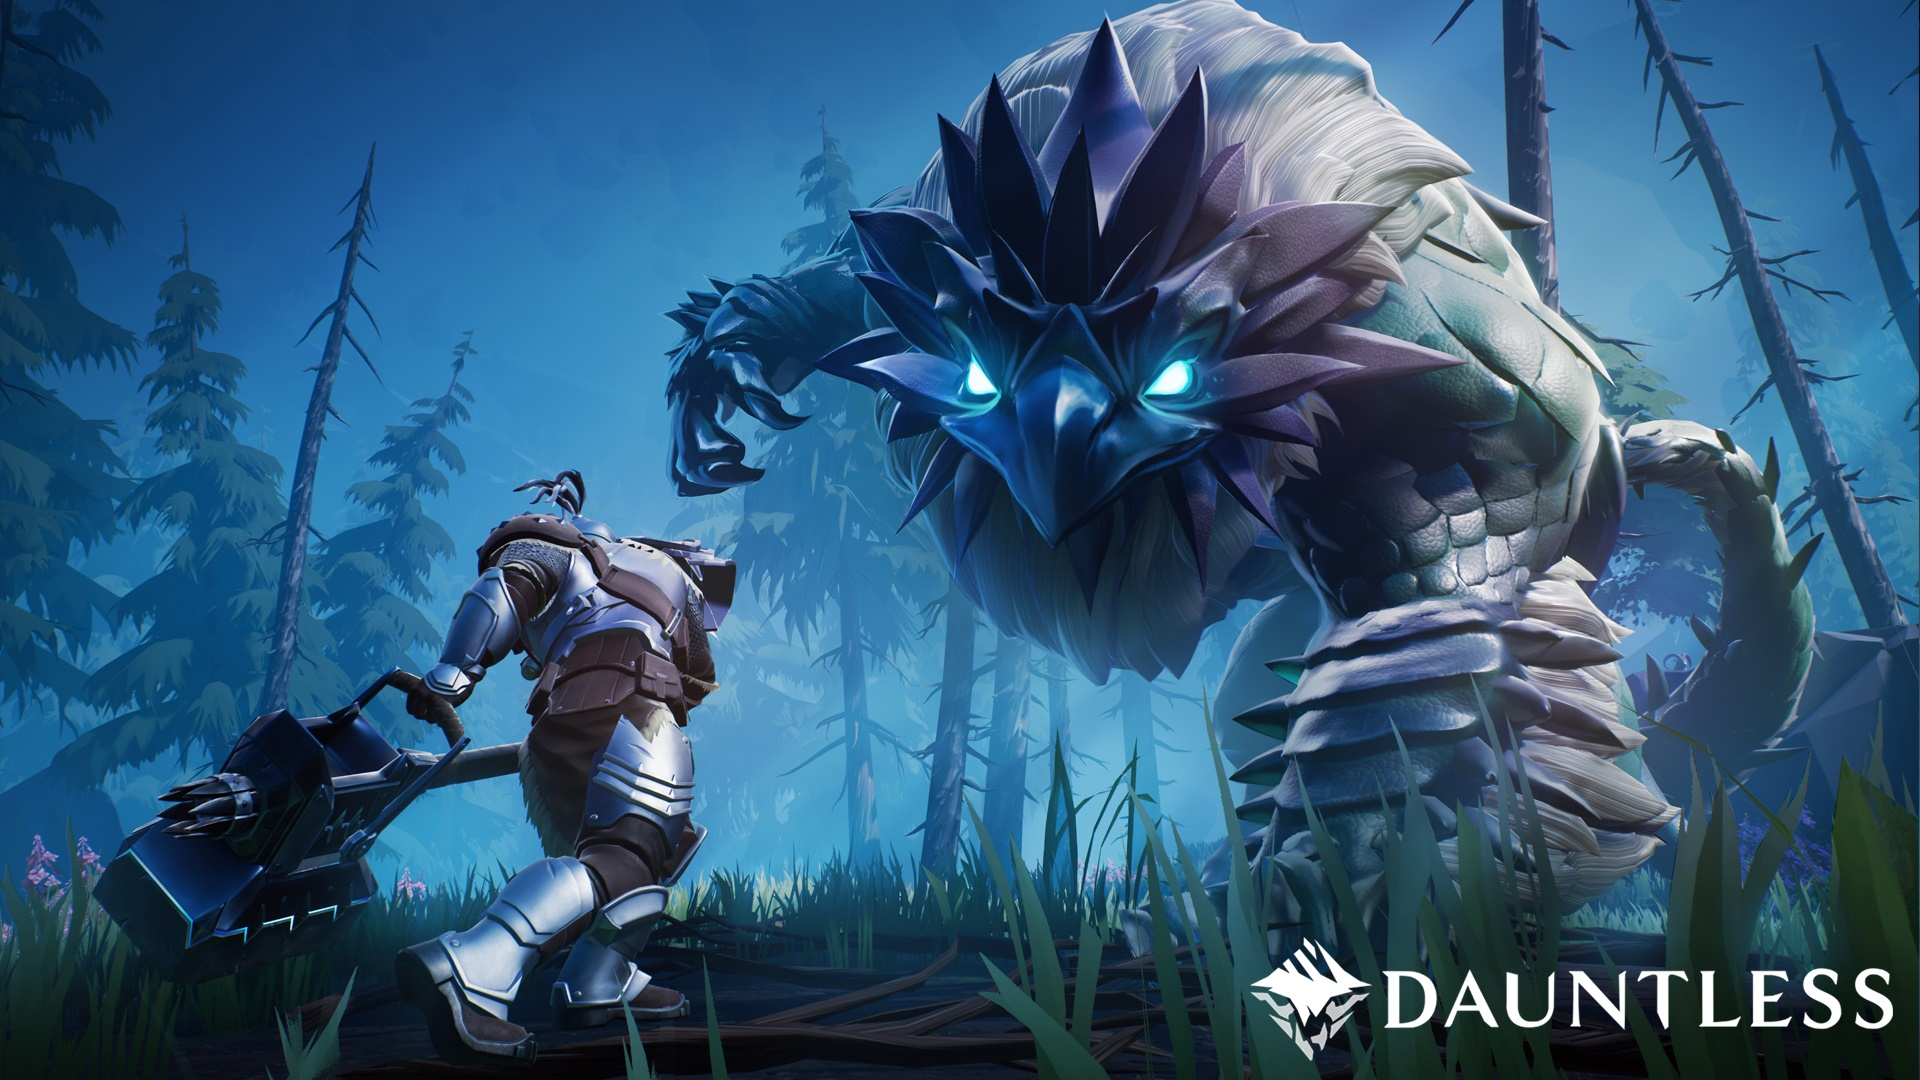 Dauntless Screenshot